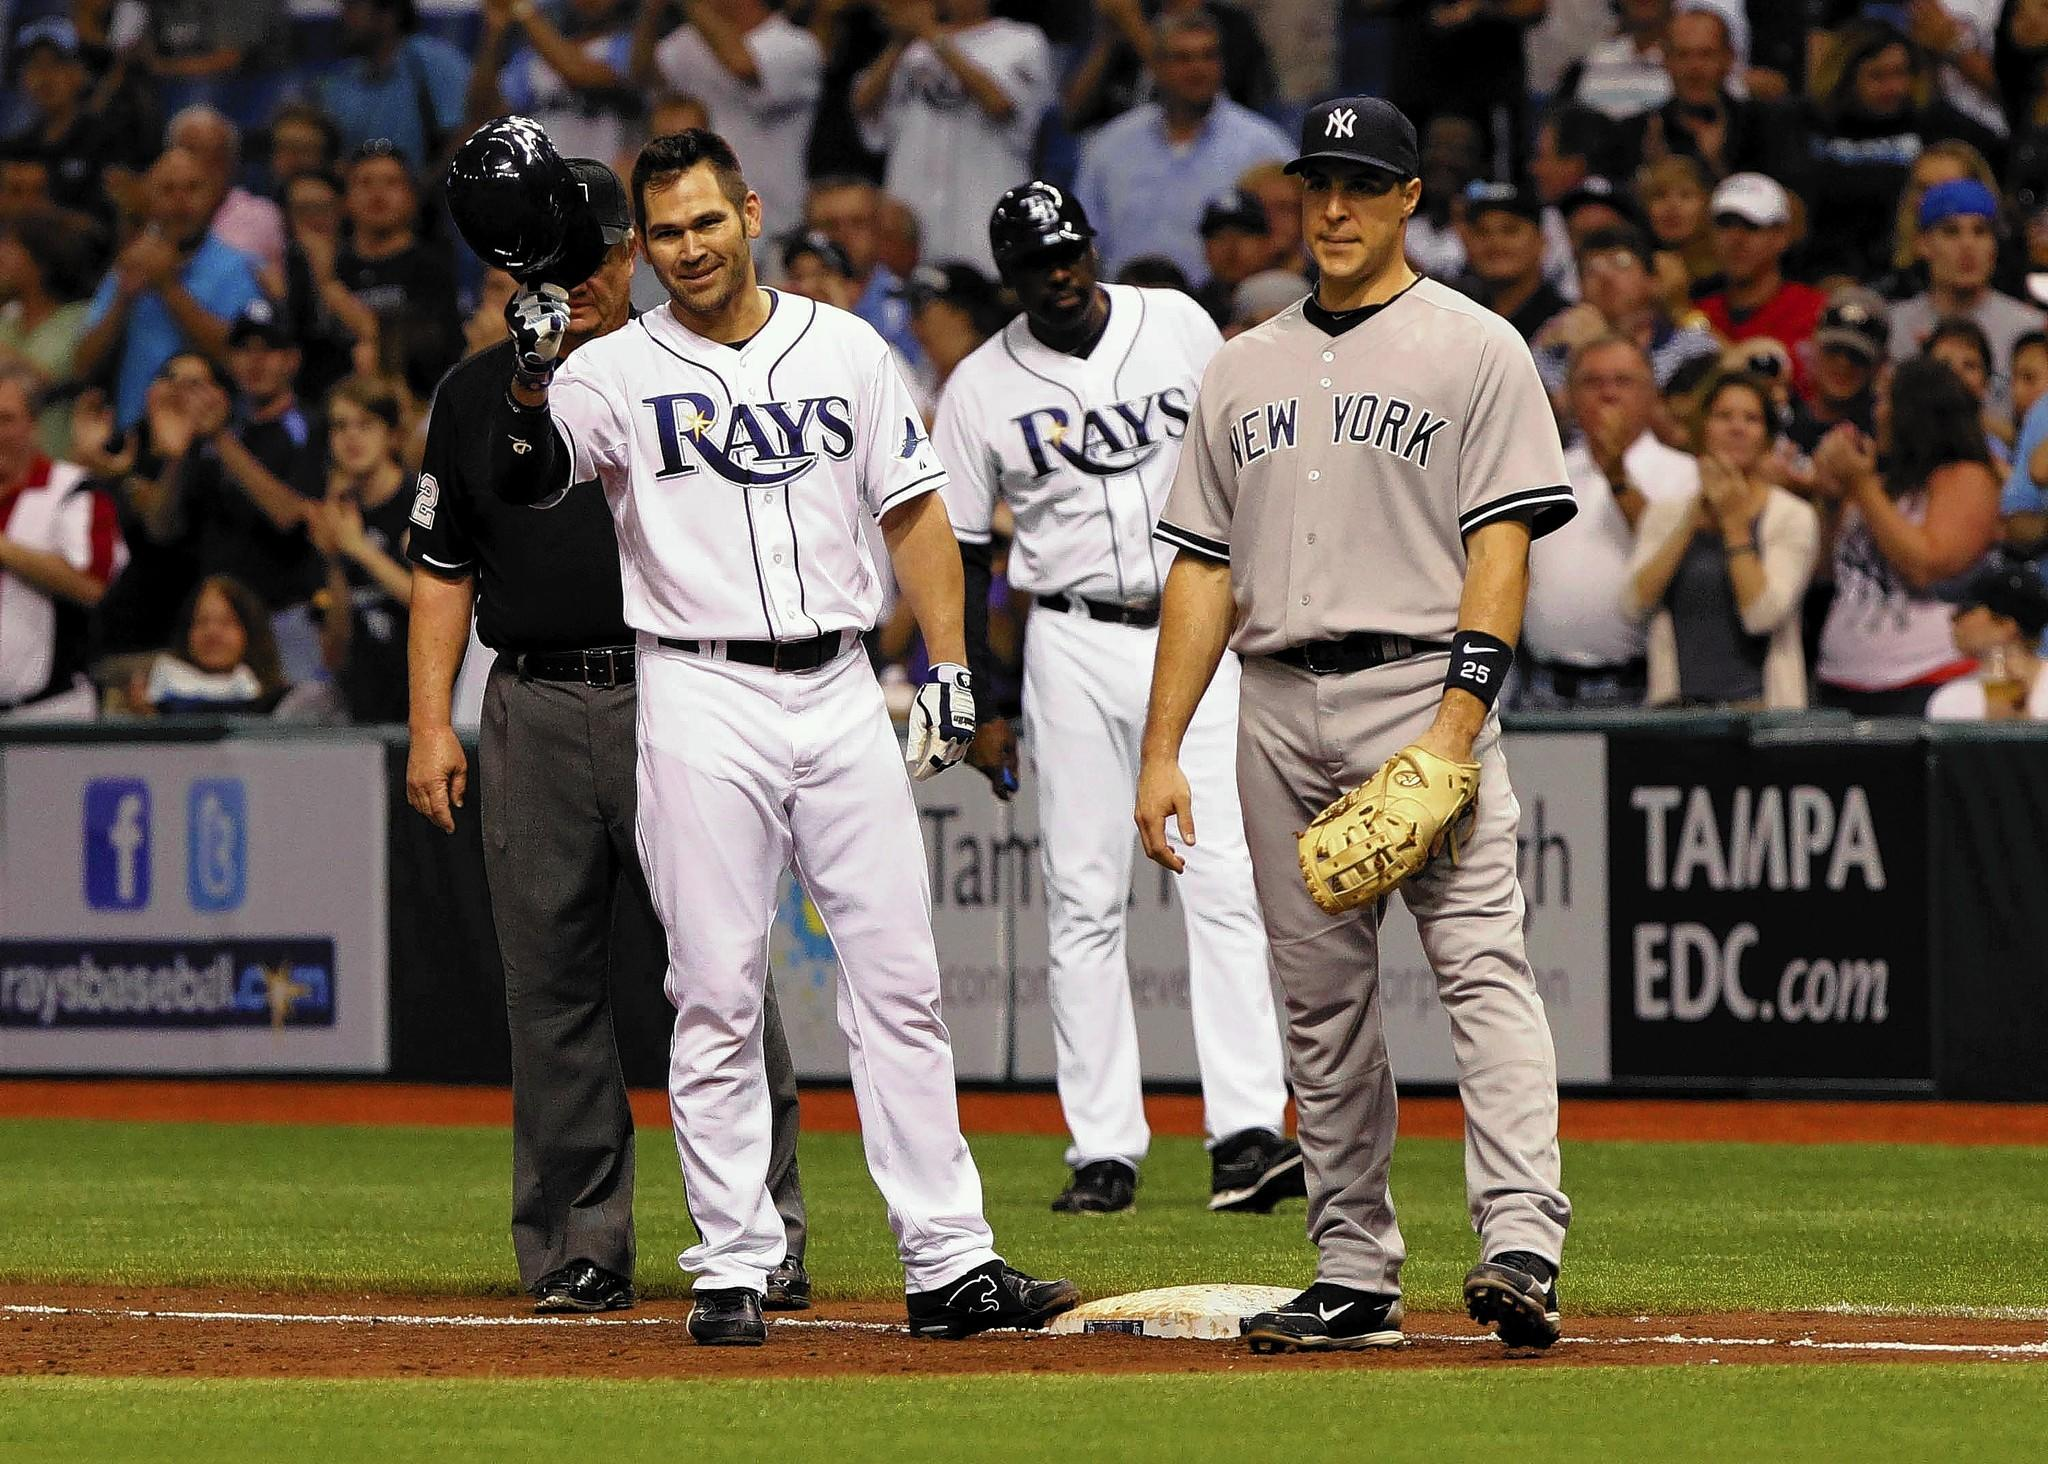 September 27, 2011; St. Petersburg, FL, USA; Tampa Bay Rays designated hitter Johnny Damon (22) reacts to fans after passin Lou Gehrig on the all-time hit list with 2,722 hits in the second inning against the New York Yankees at Tropicana Field. Mandatory Credit: Kim Klement-US PRESSWIRE ORG XMIT: USPW-31716 ** Usable by BS, CT, DP, FL, HC, MC, OS and HOY **